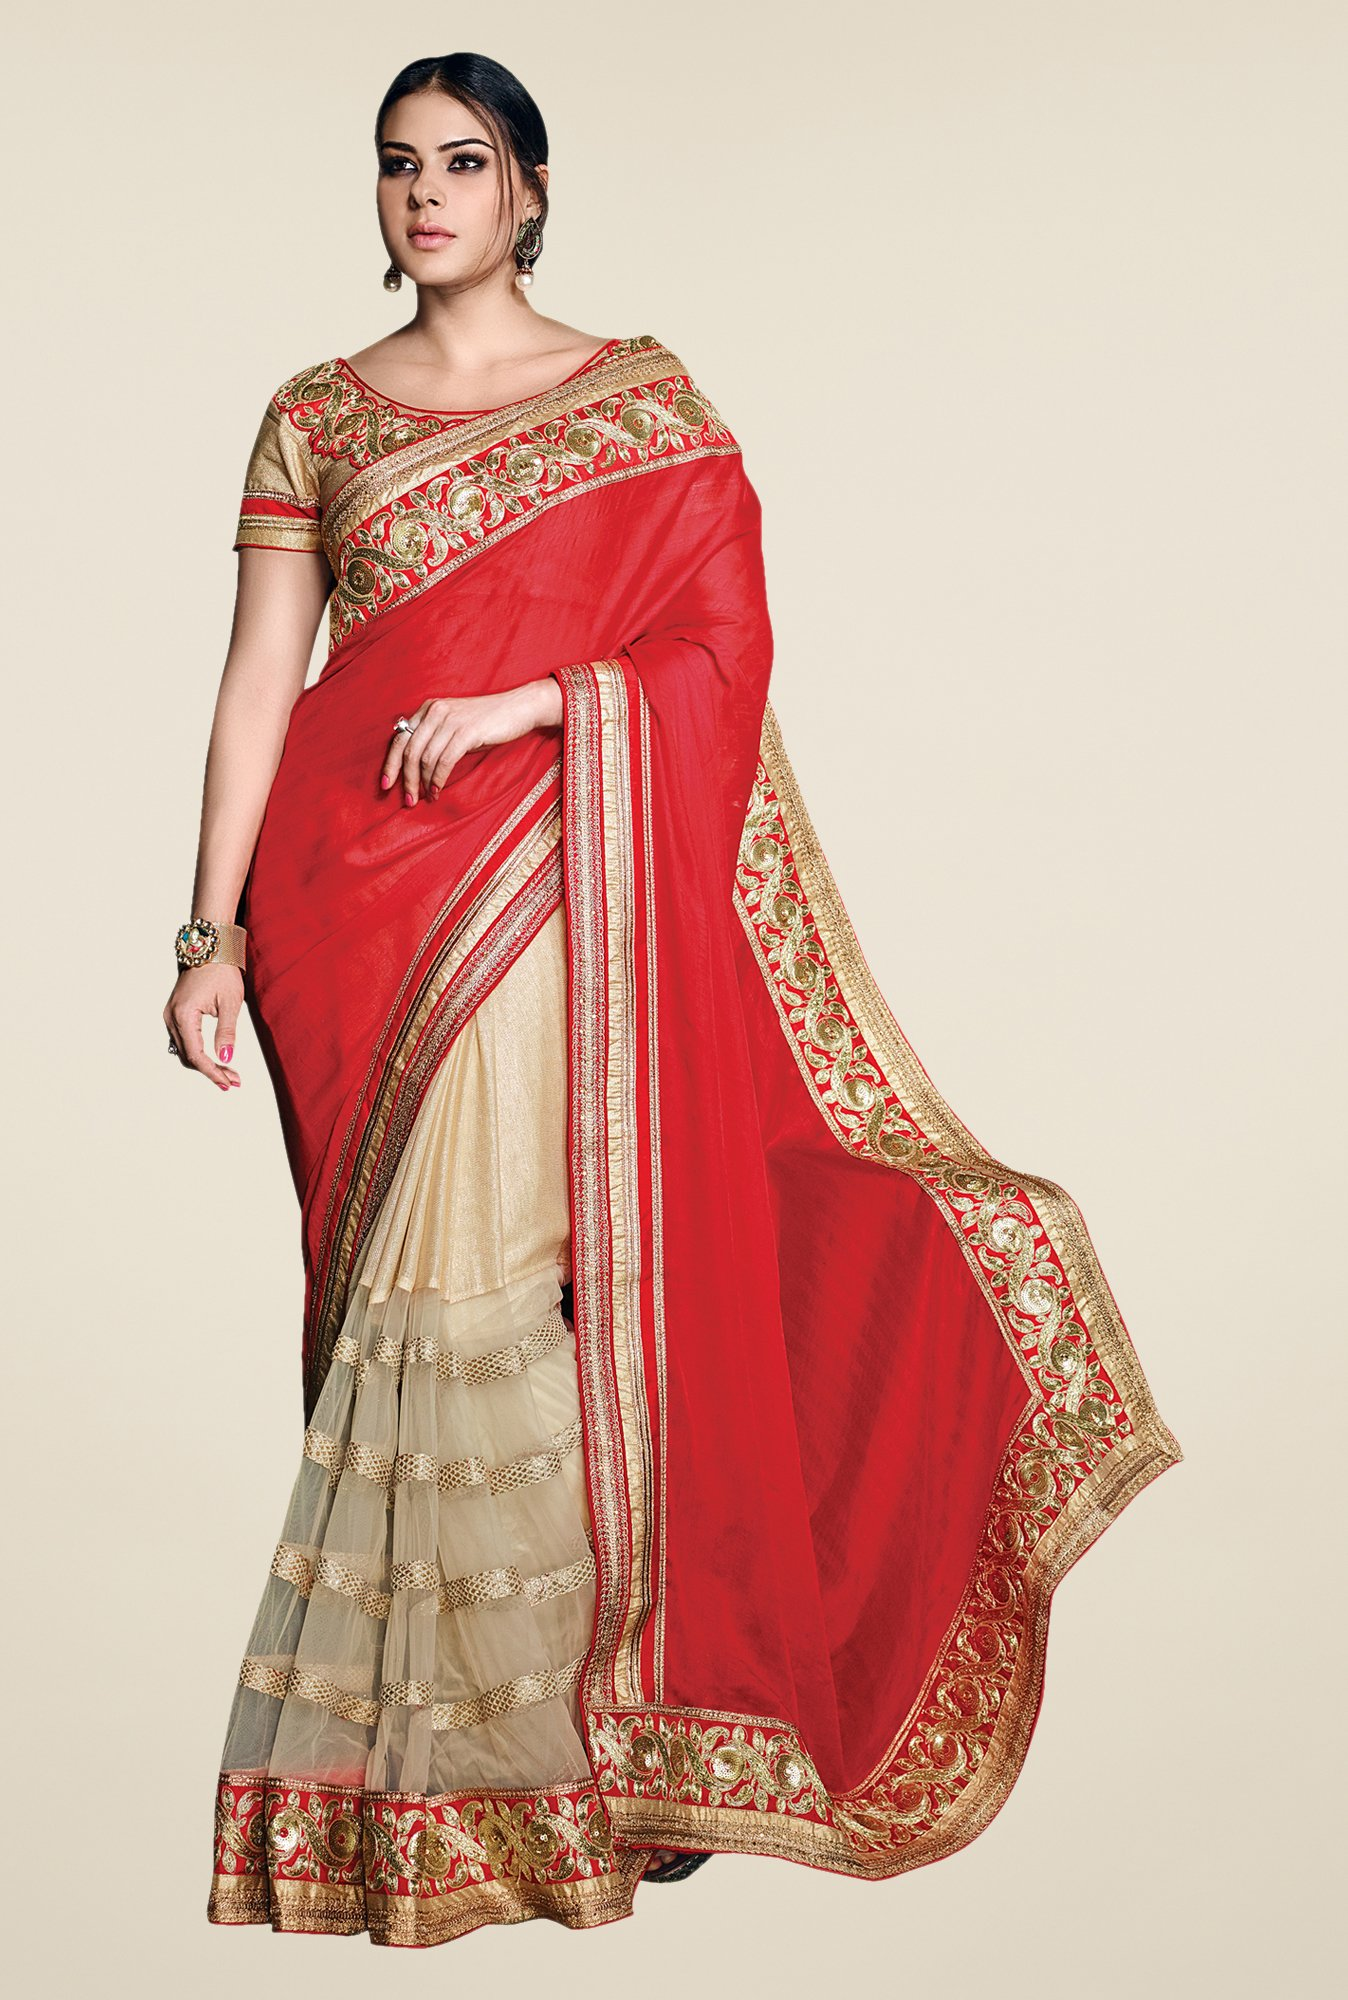 Shonaya Red & Off White Net Jute Cotton & Satin Saree